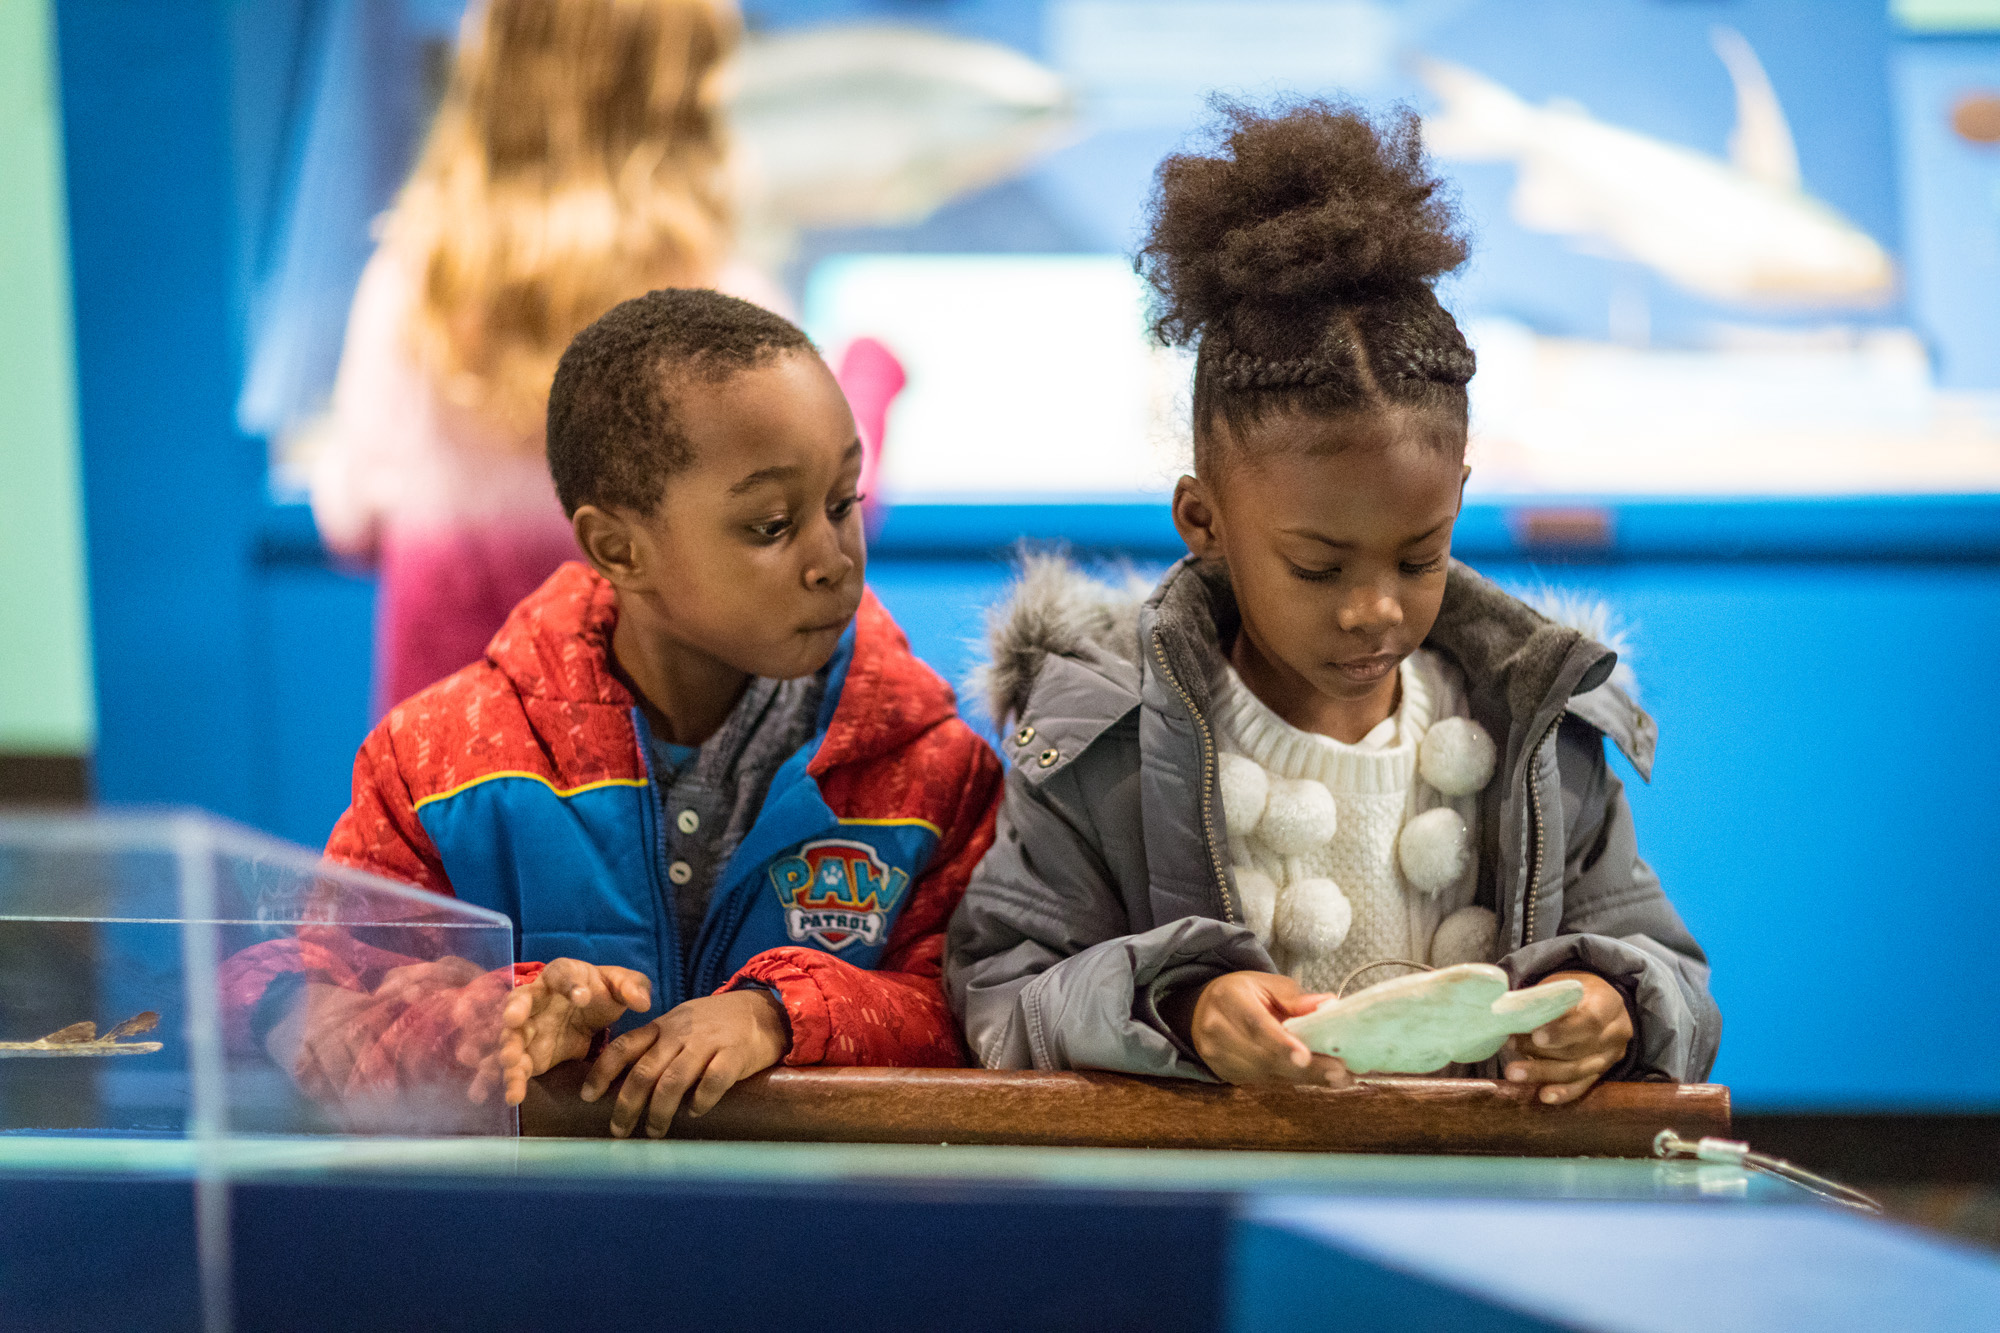 Two children play with objects in an exhibition. A young girl on the right inspects the replica fossil that she holds with both of her hands. The young boy to her left looks over her shoulder to also wonder at the object.